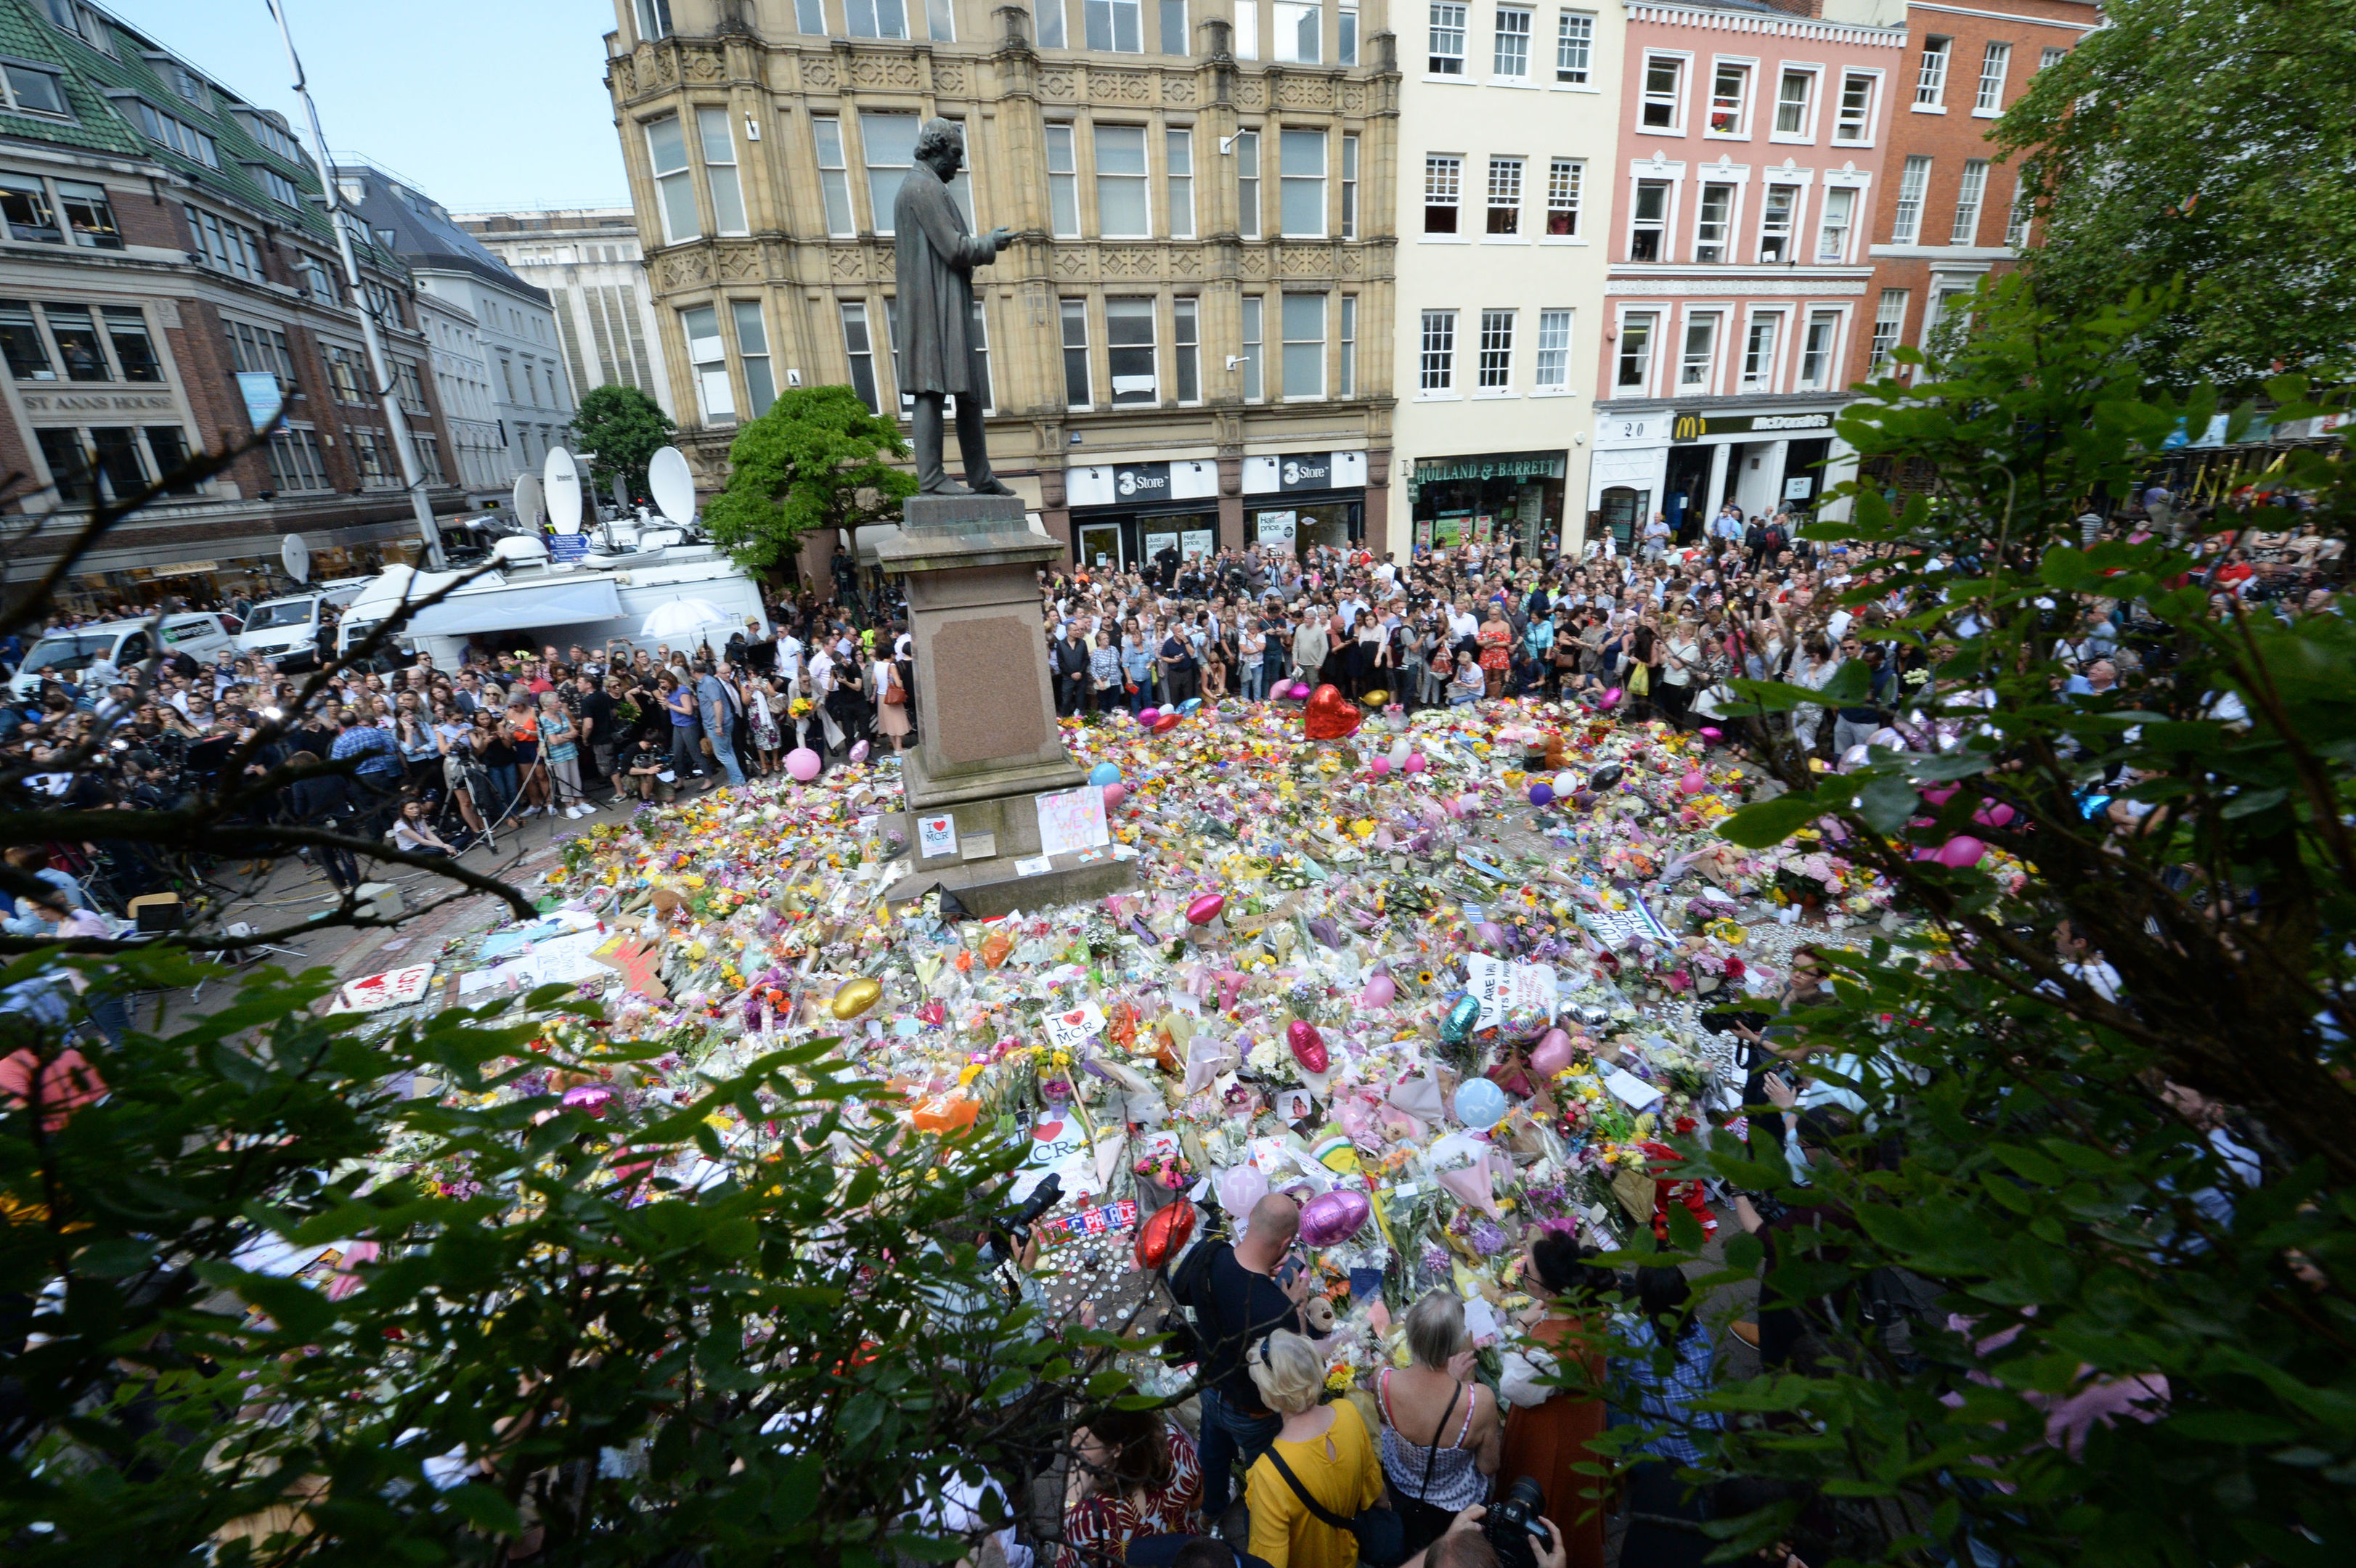 A minute's silence for victims of the bombing in St Ann's Square, Manchester.